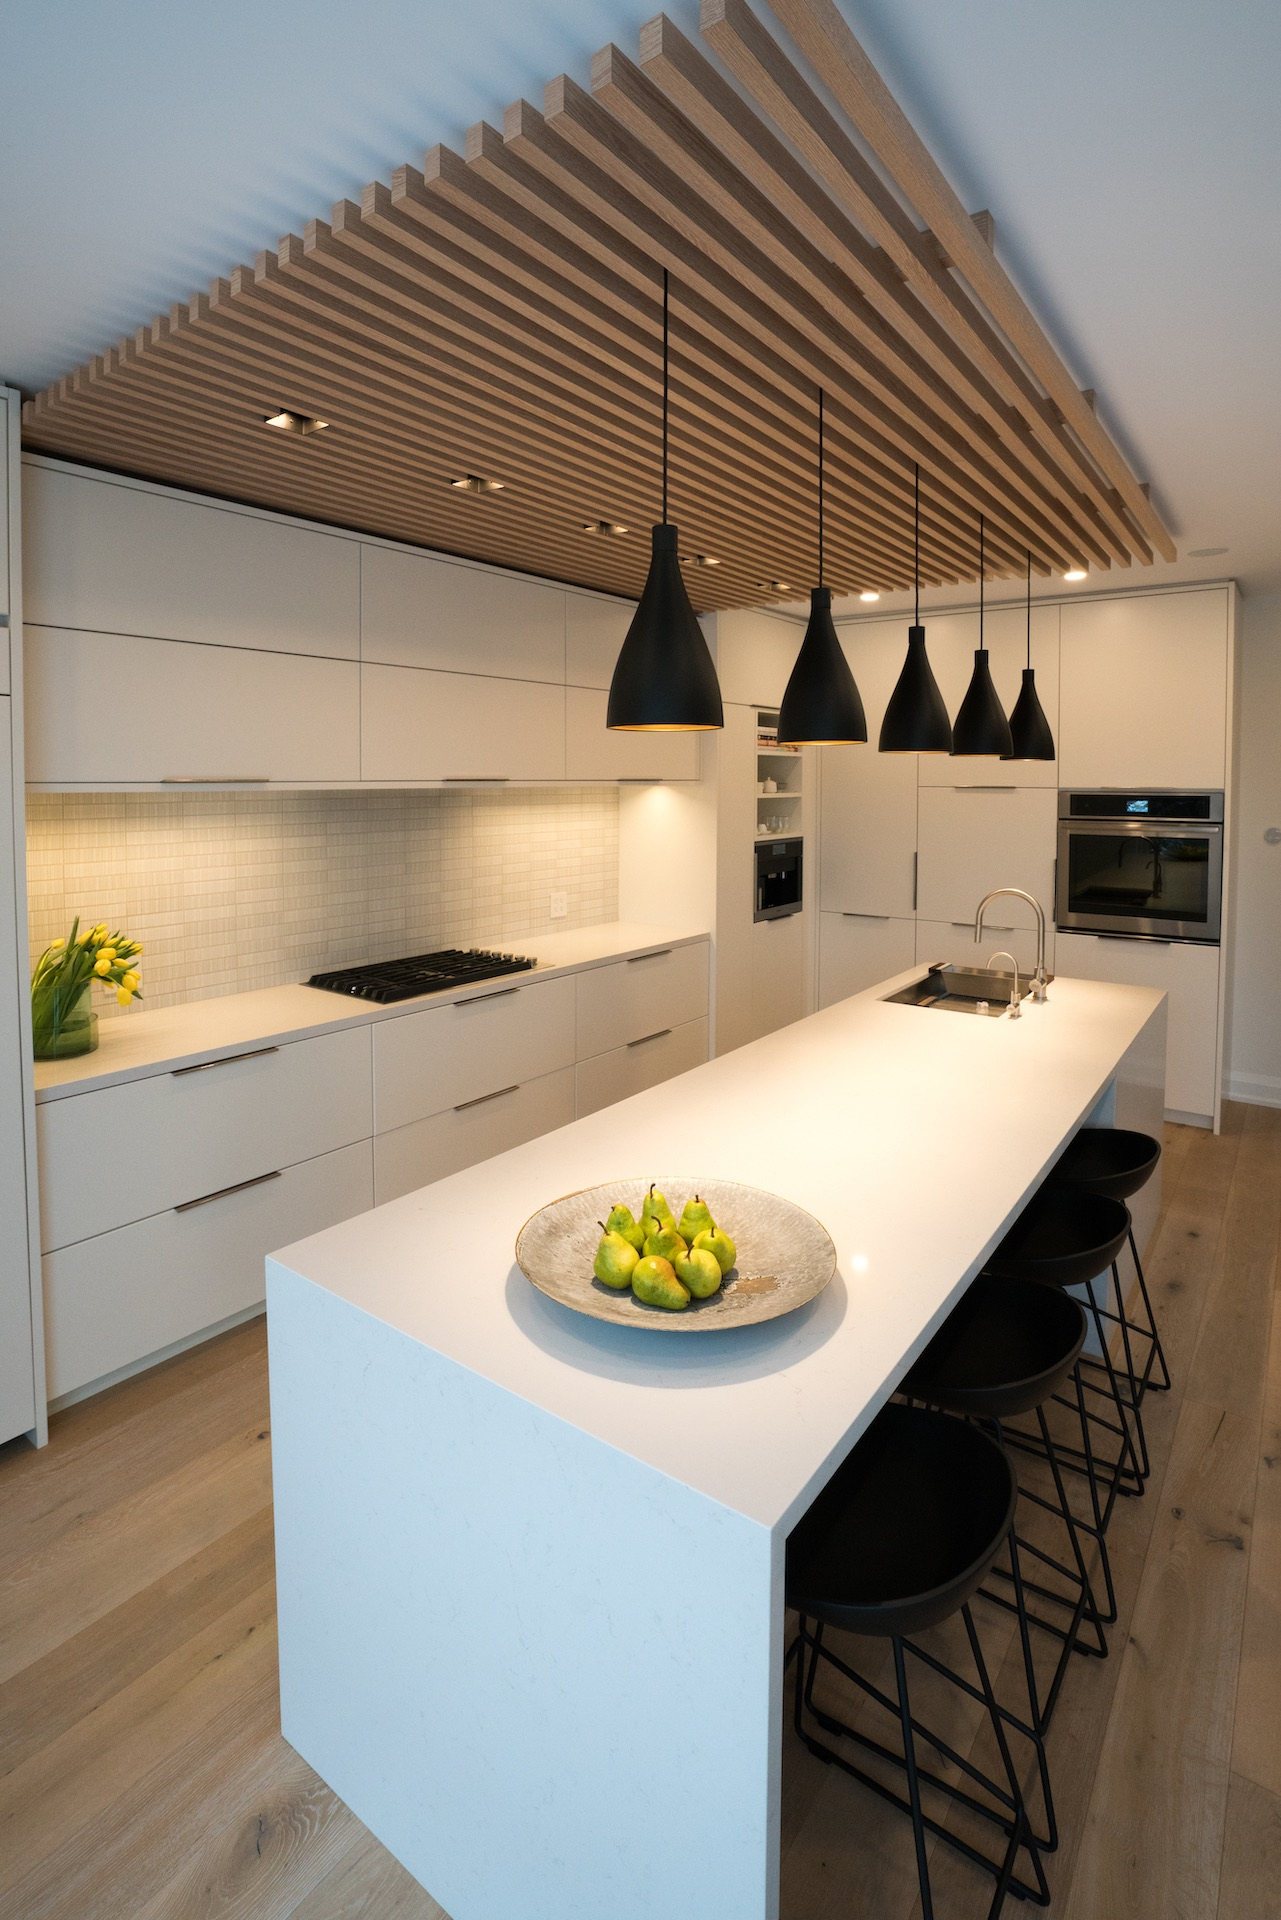 White kitchen island with wood panels on ceiling